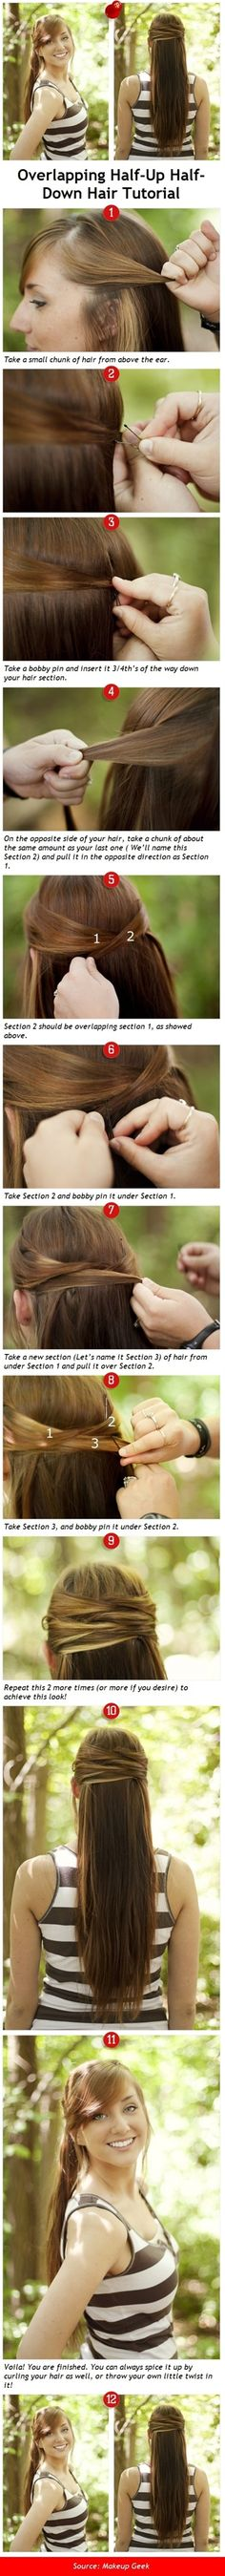 Overlapping Half-Up Half-Down Hair Tutorial Easy!!!